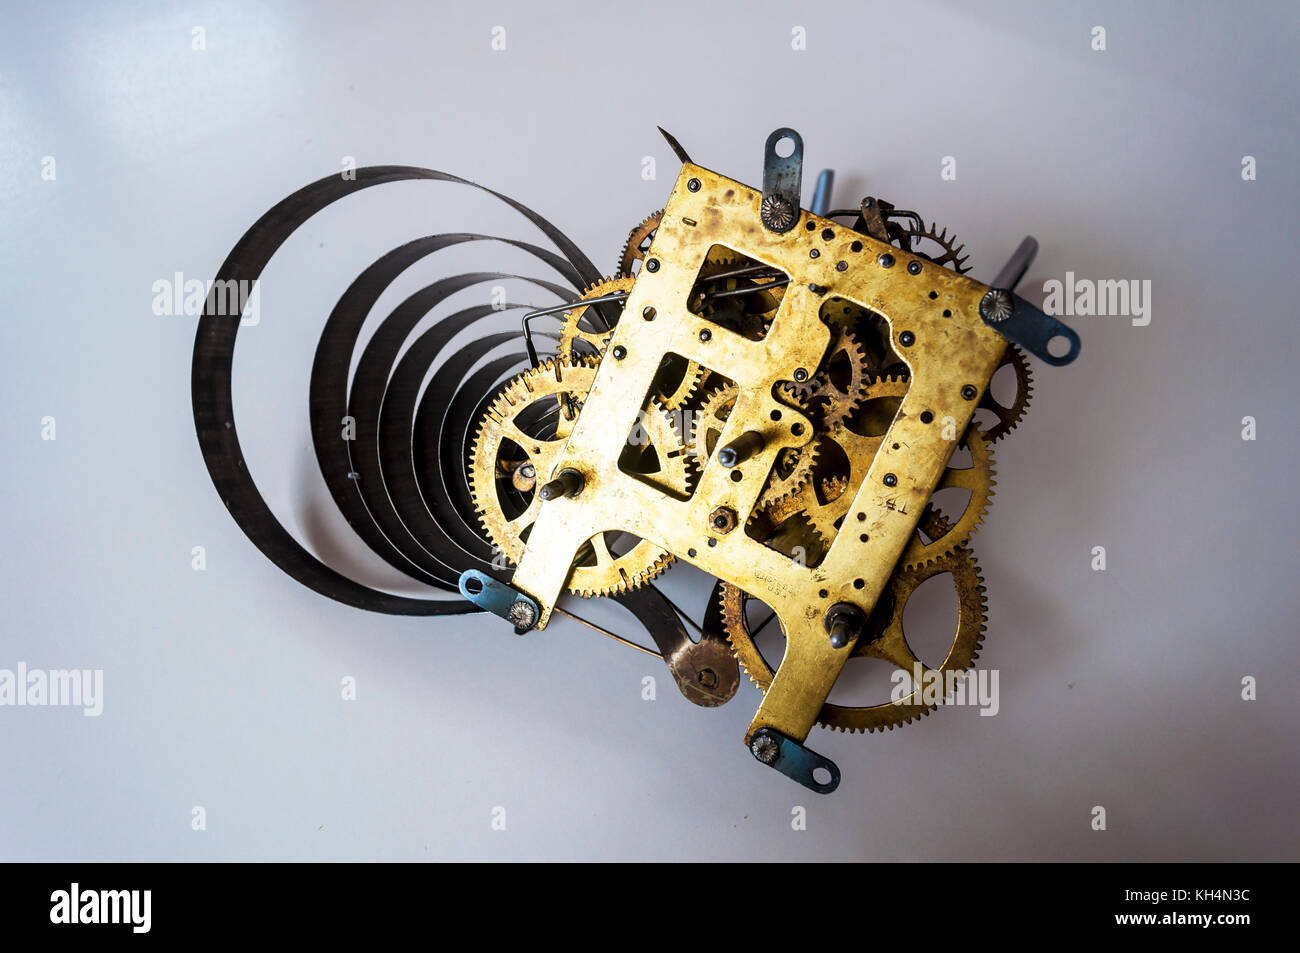 Tick-tock, the inner mechanism of a clock with a spring - Stock Image